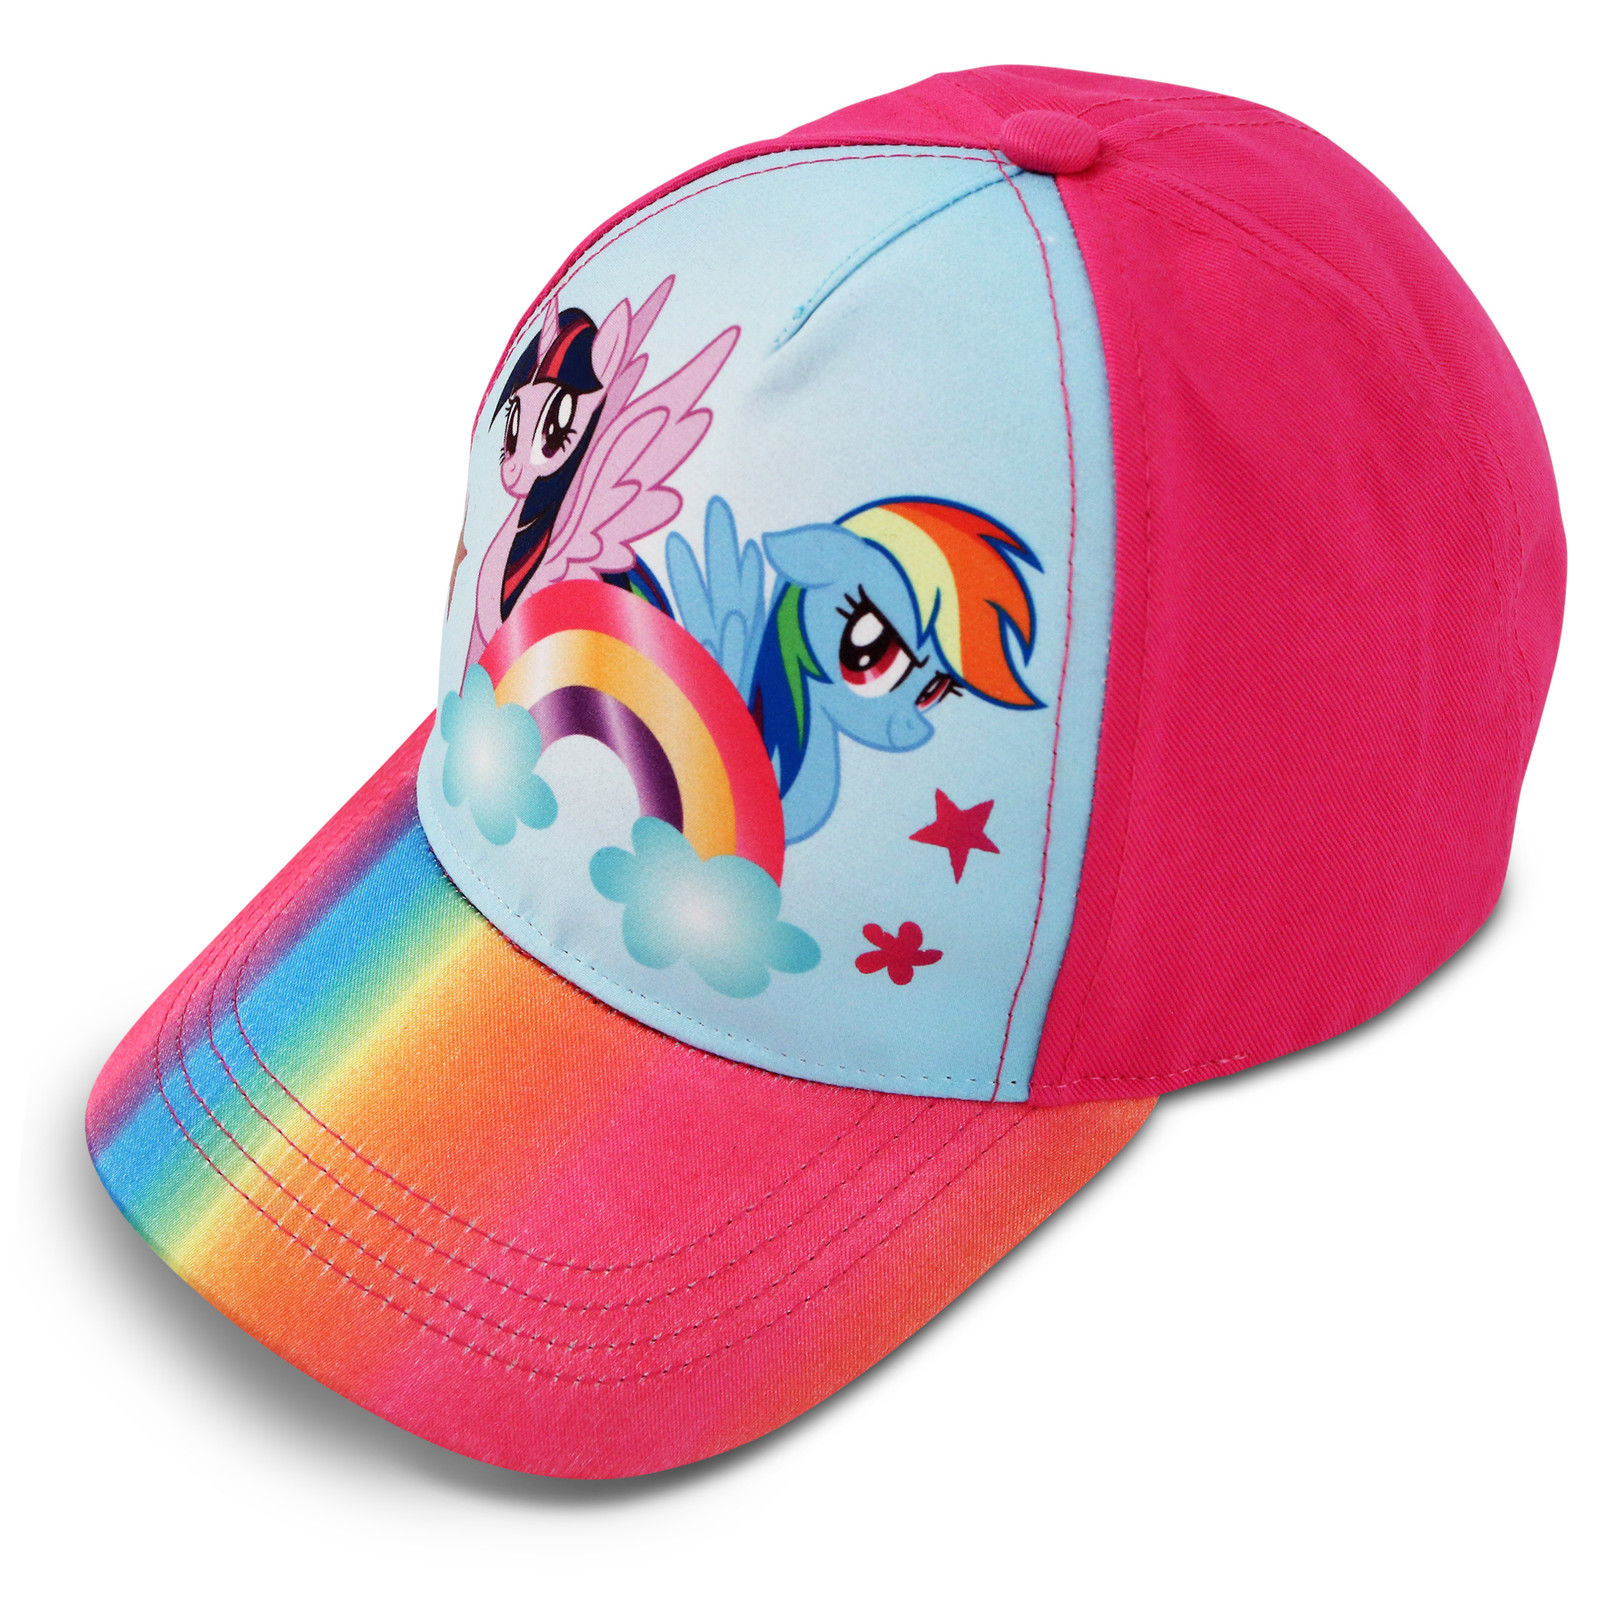 Hasbro My Little Pony Rainbow Dash Cotton Baseball Cap, Little Girls, Age 4-7